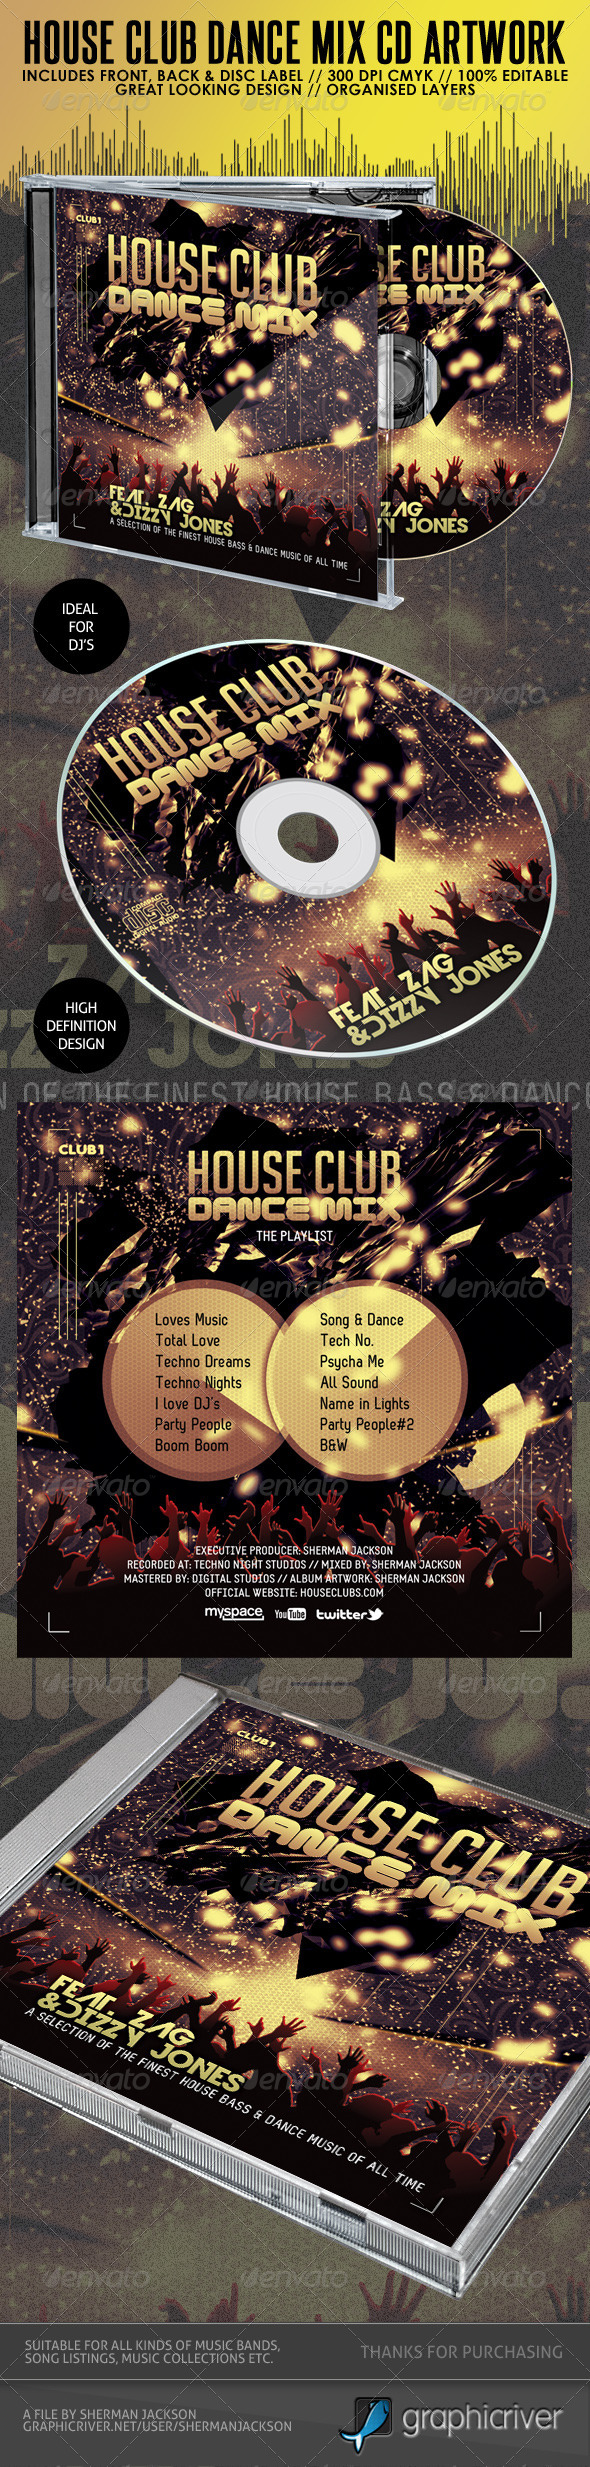 House Club & Dance Mix CD Album Artwork - CD & DVD artwork Print Templates